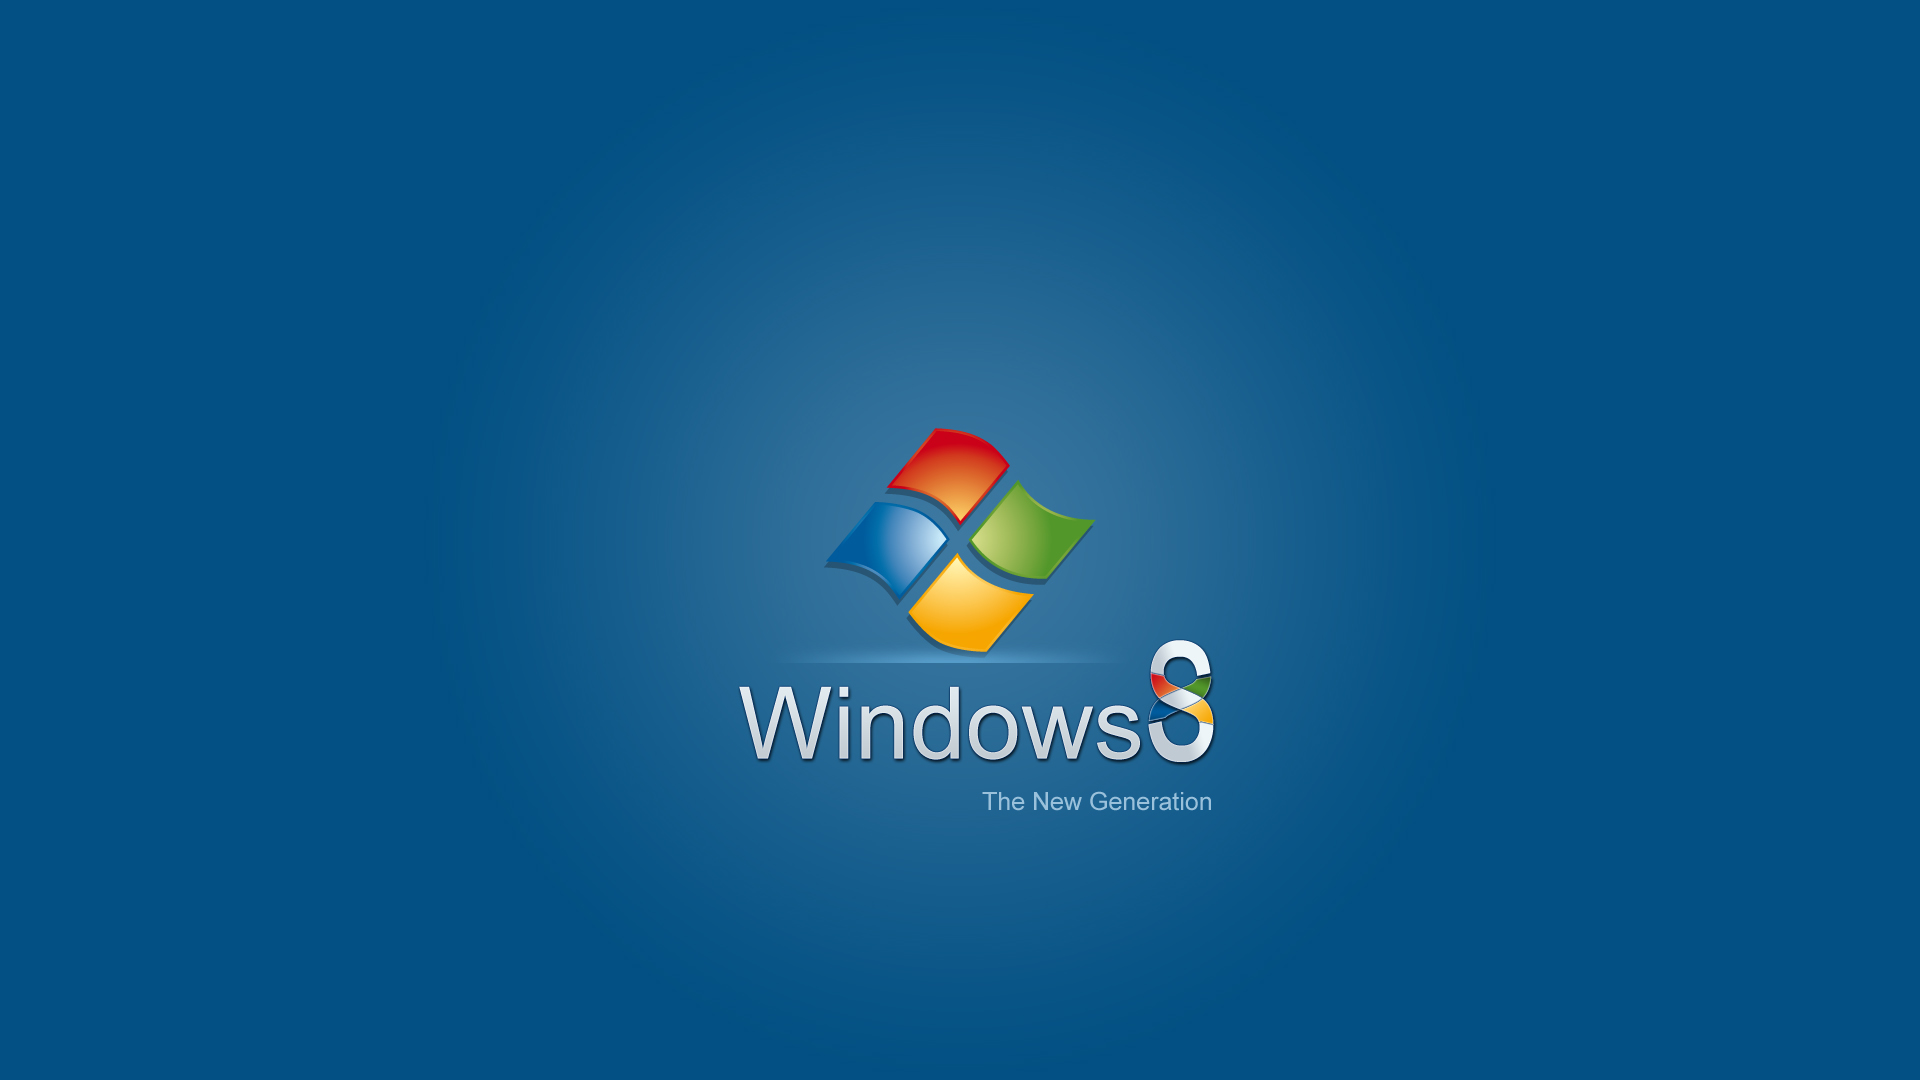 windows 8 wallpaper hd 11 Download Windows 8 Wallpapers HD 1920x1080